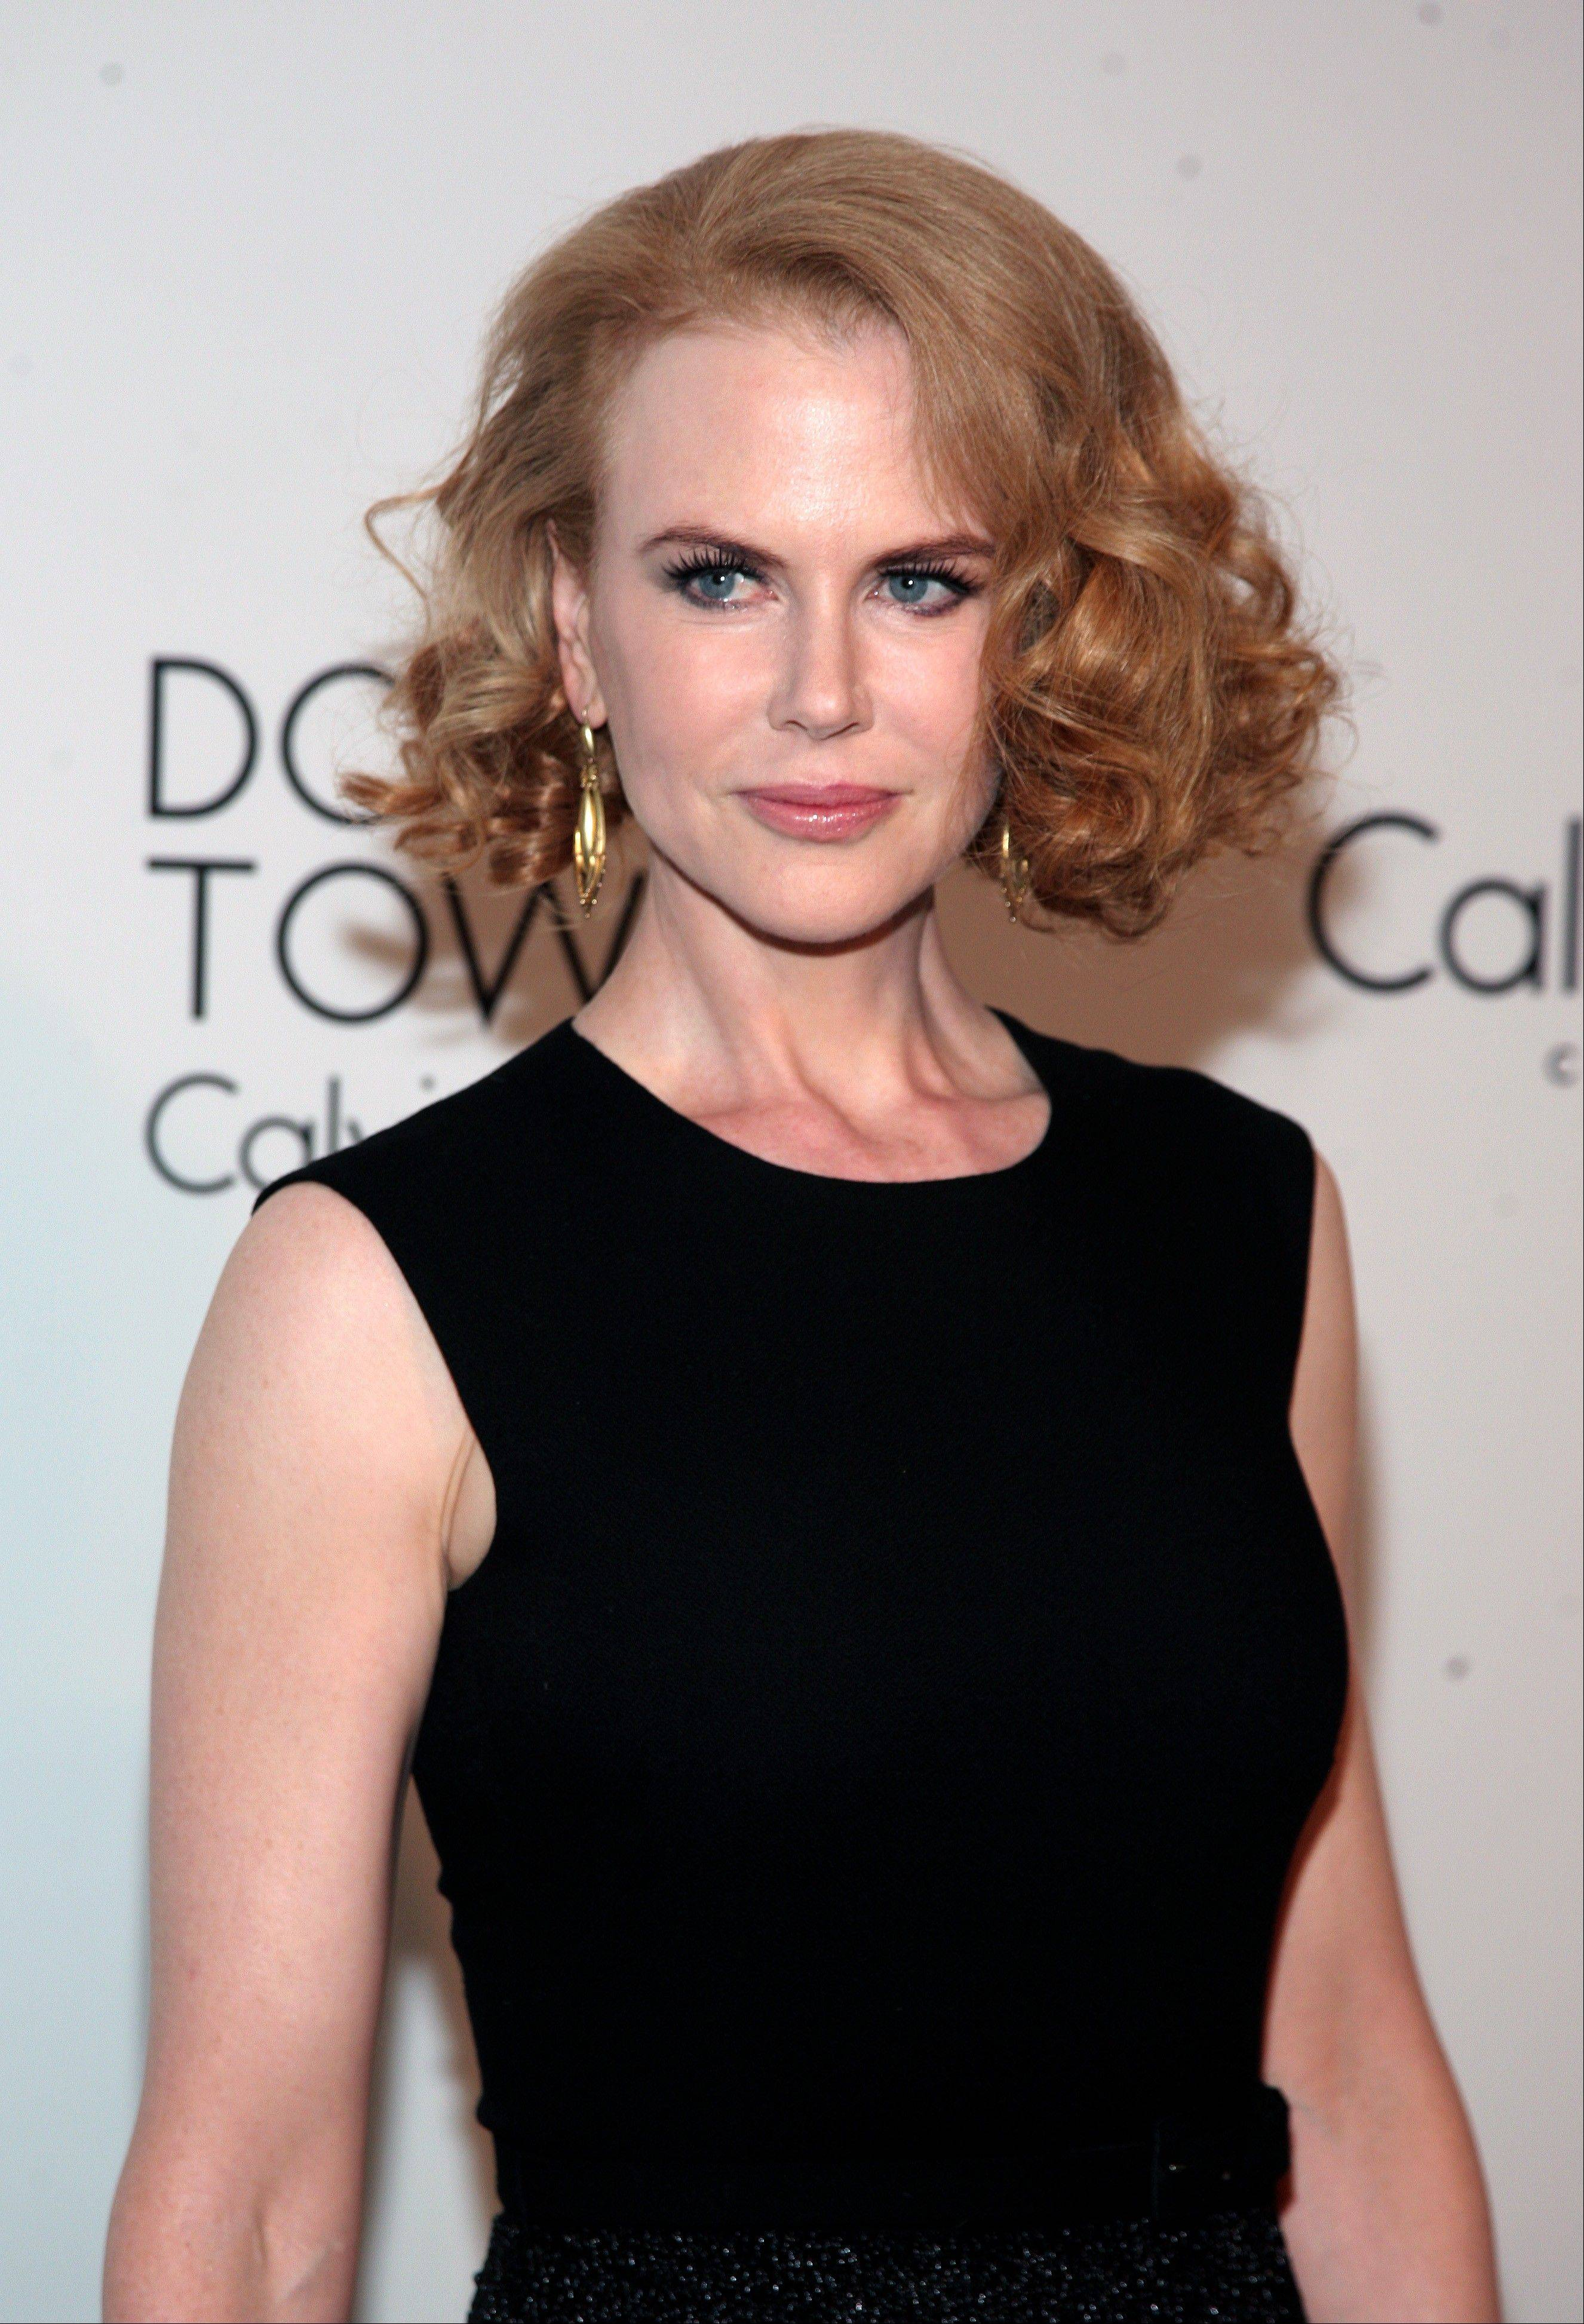 Nicole Kidman says she was shaken up after being knocked down by a bicyclist Thursday in New York.